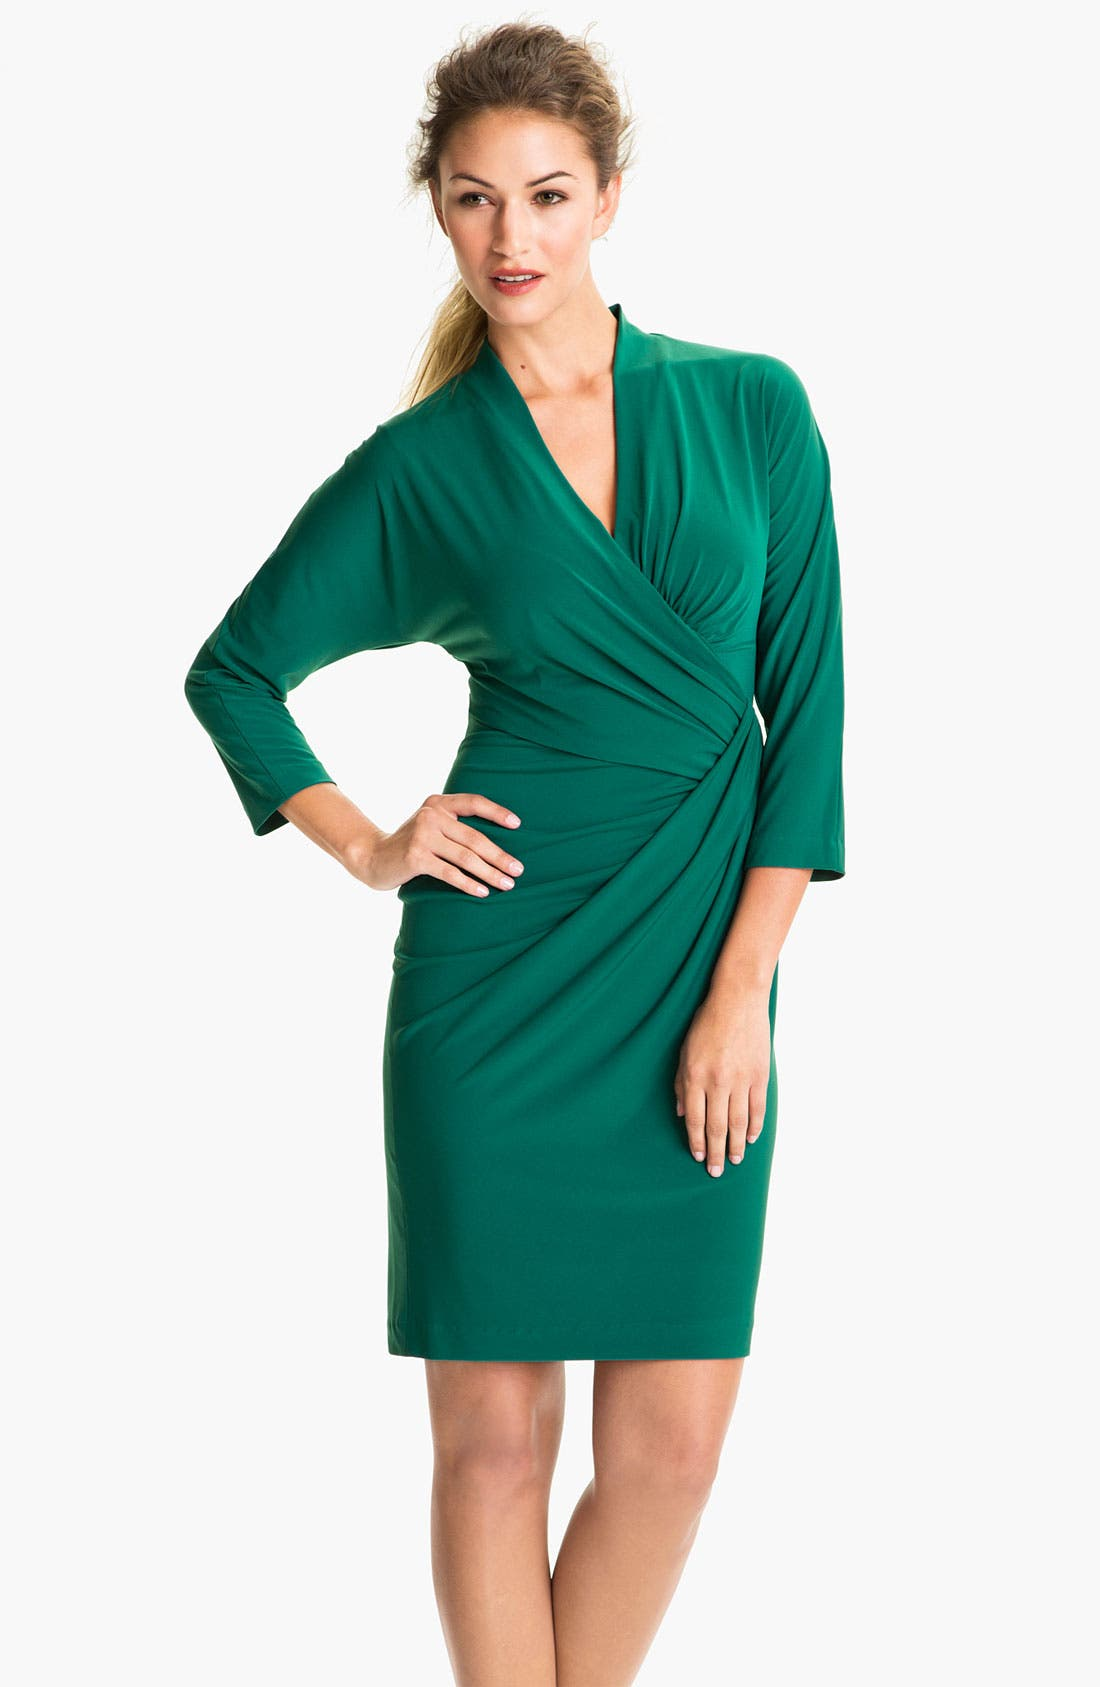 Alternate Image 1 Selected - Suzi Chin for Maggy Boutique Side Gather Jersey Dress (Petite)